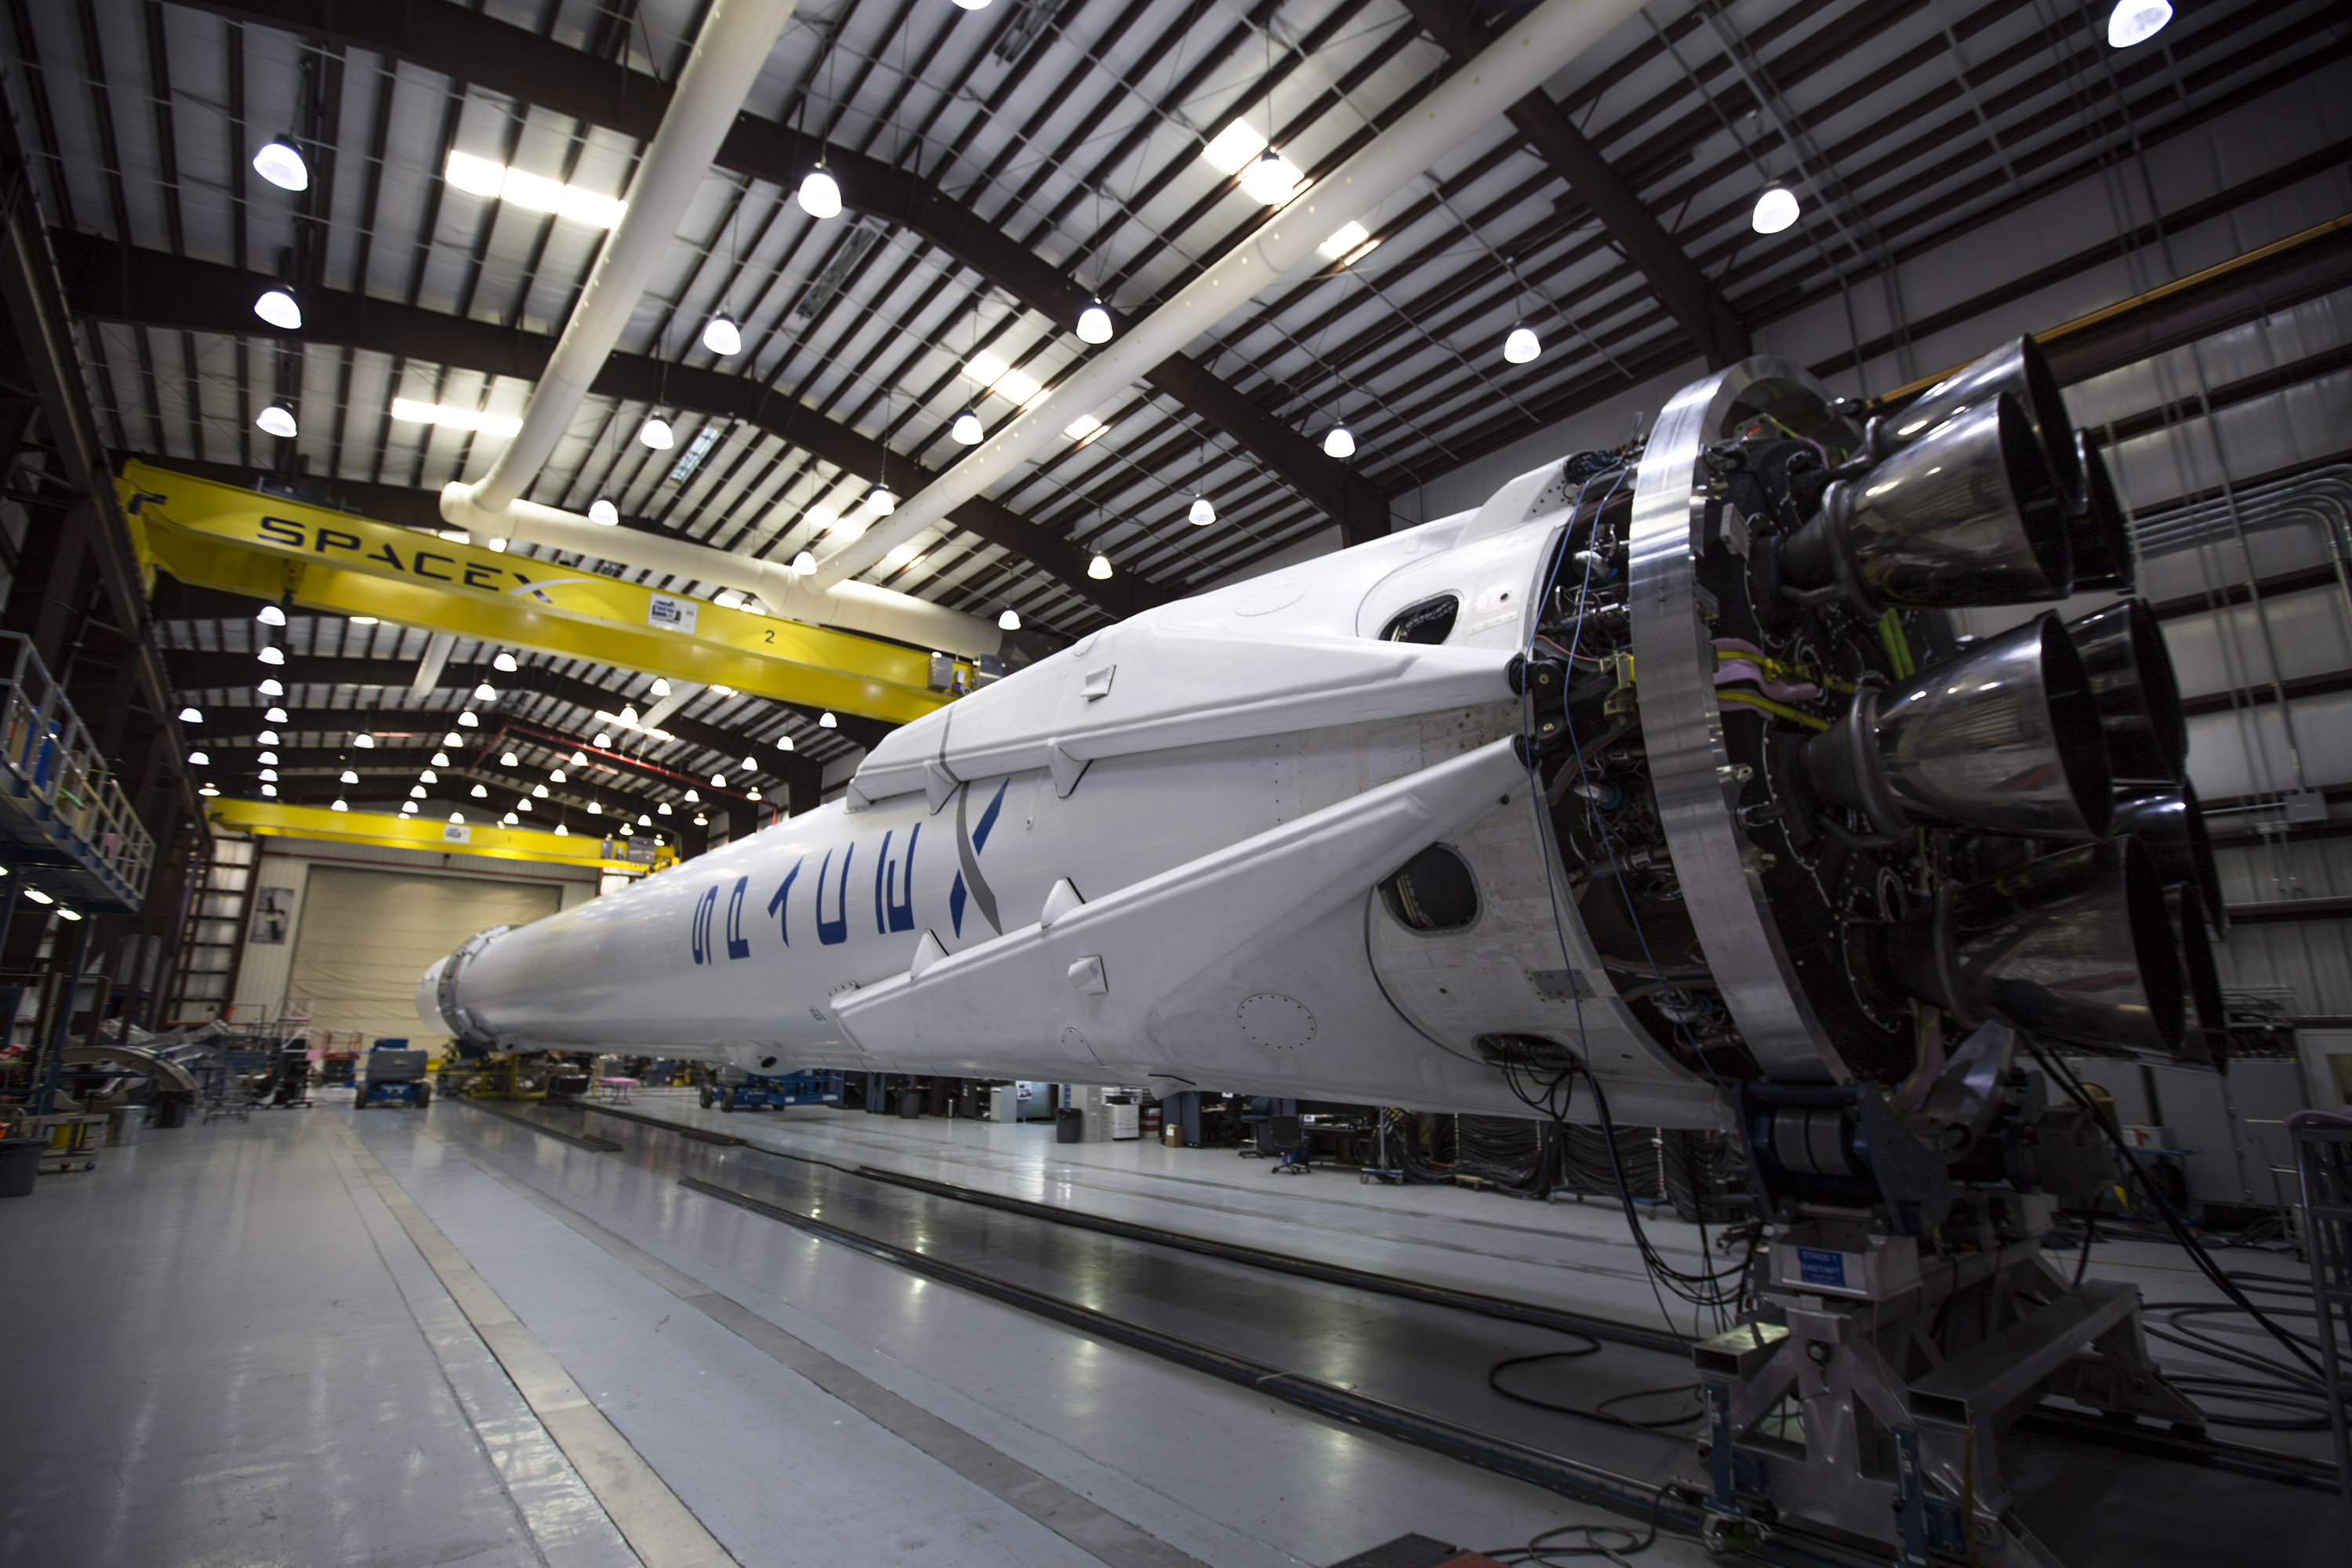 SpaceX - Wikipedia